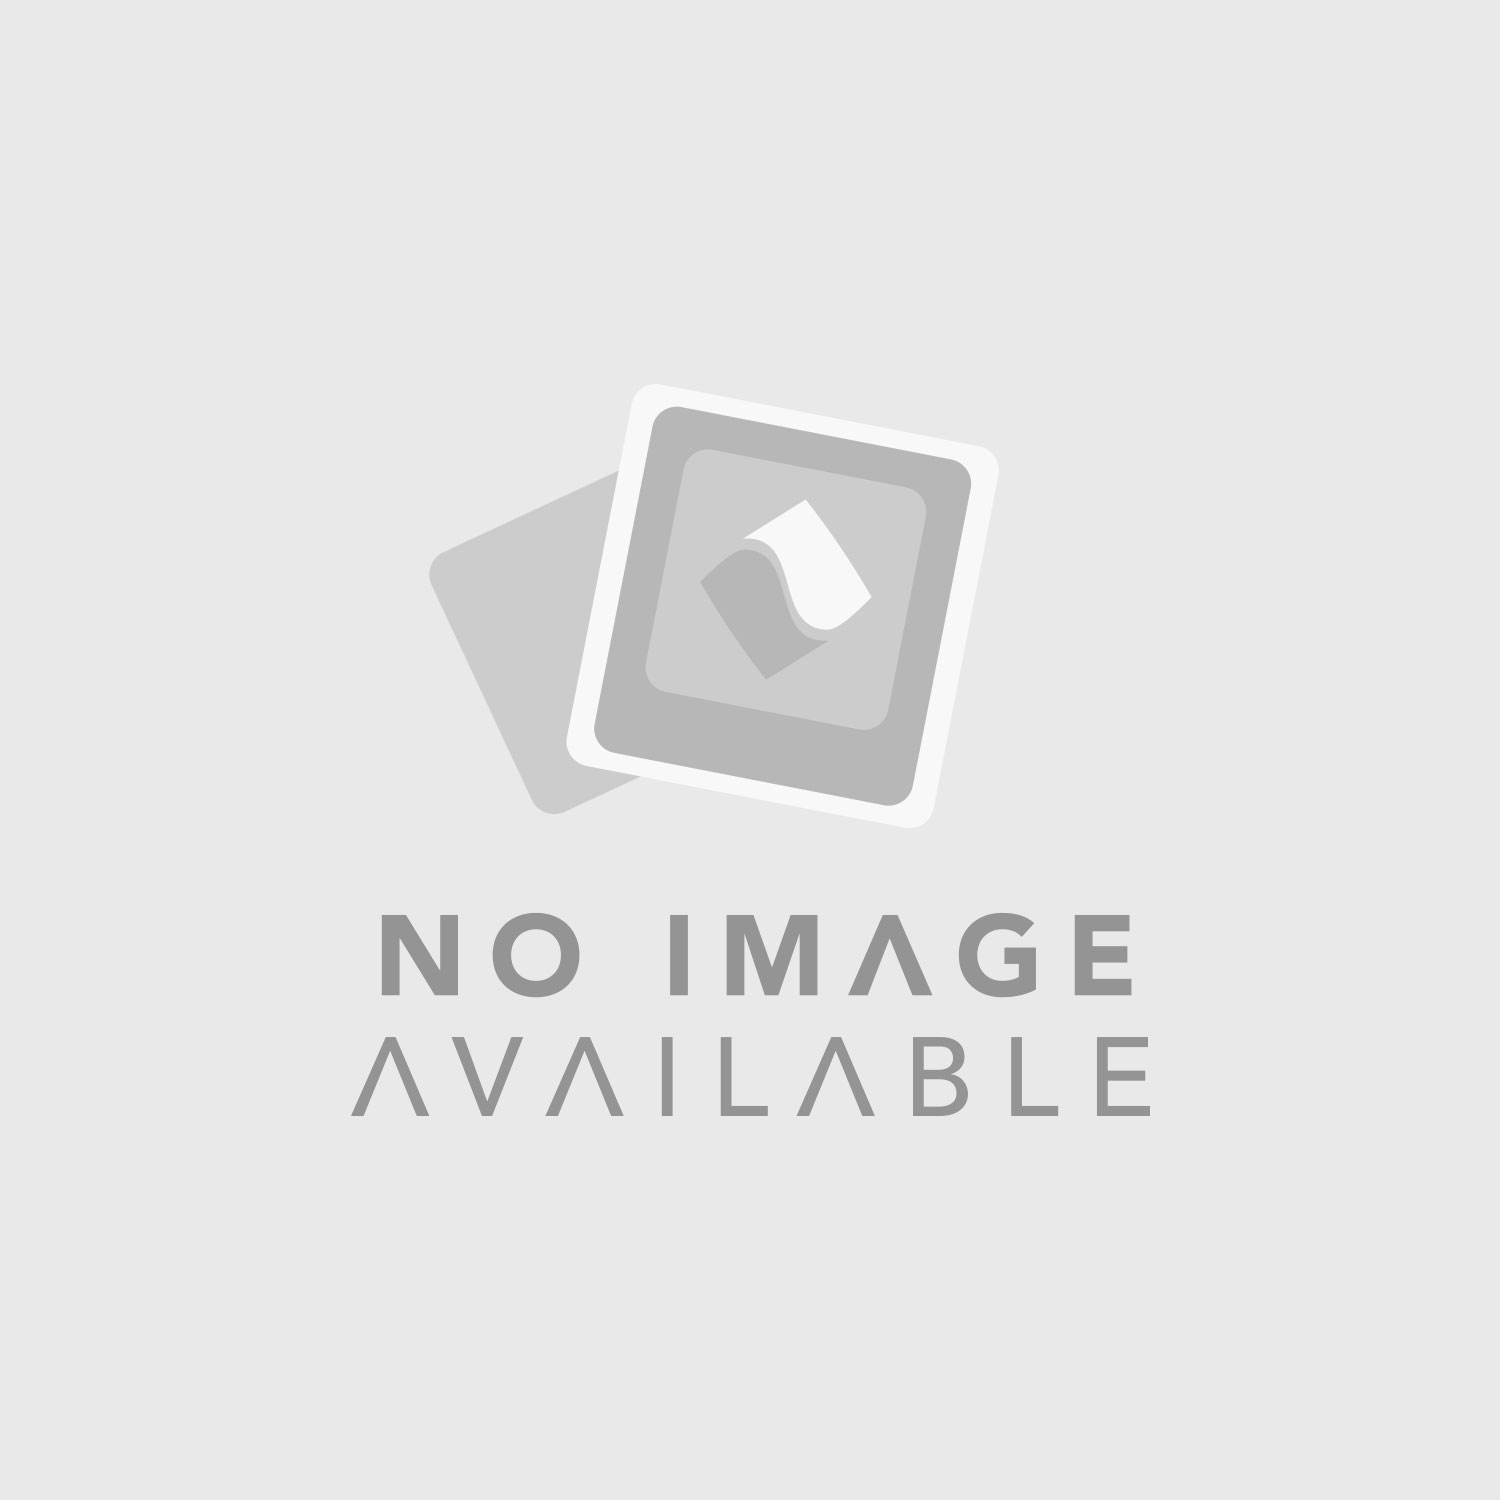 American DJ Accu-Cable EC123-100 12 Gauge IEC Power Extension Cord (100')